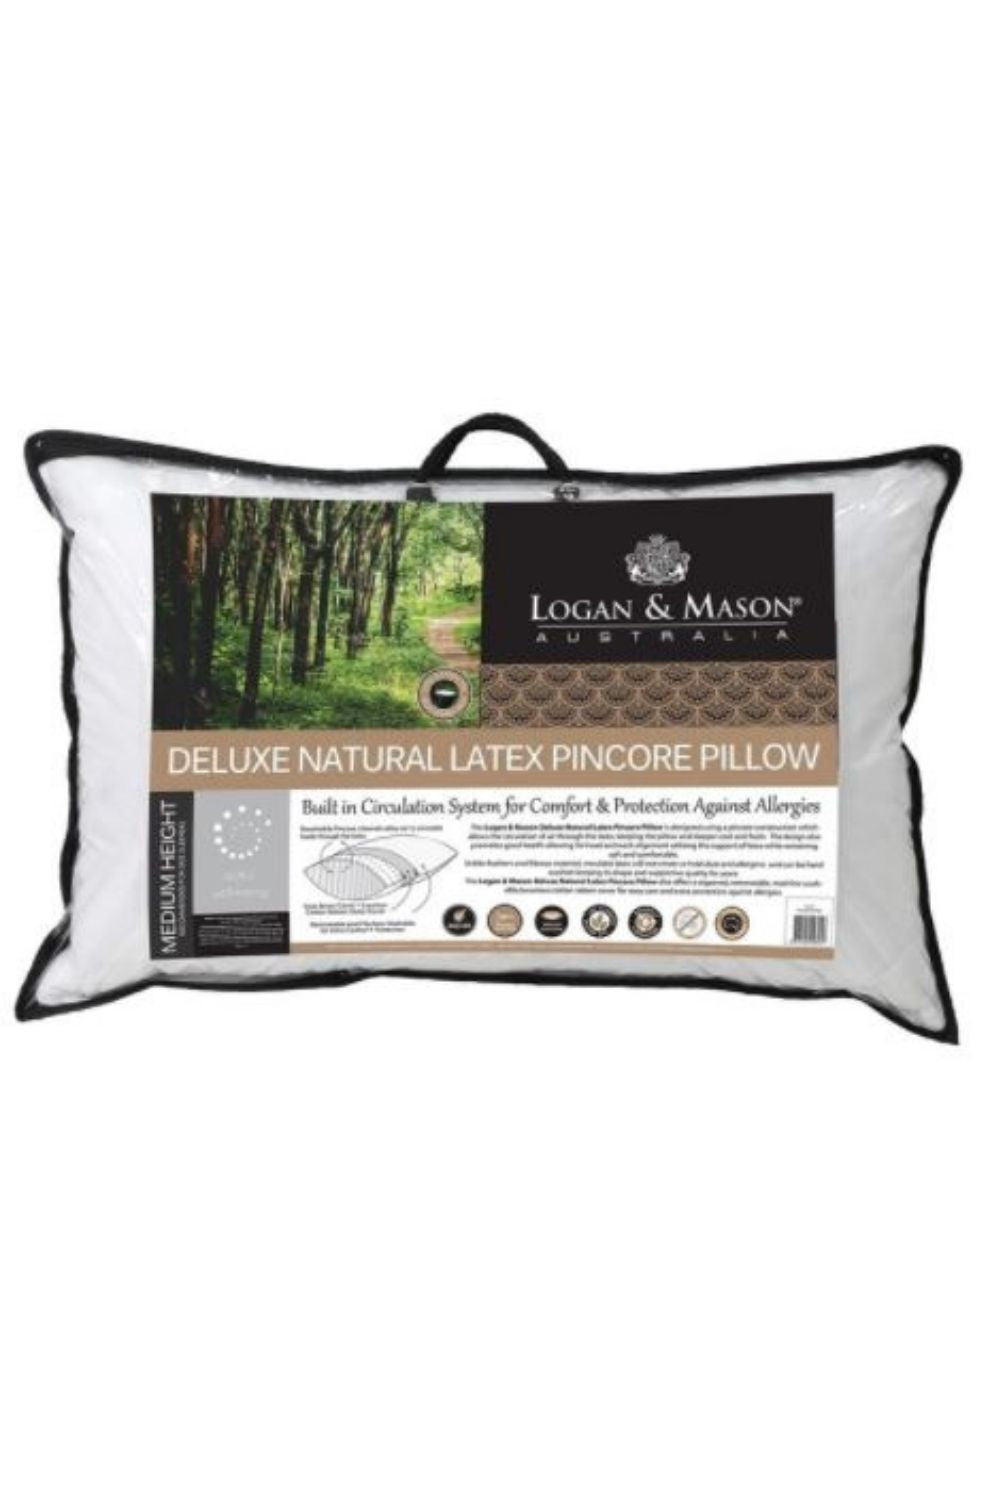 Logan and Mason Deluxe Pure Latex Pincore Pillow